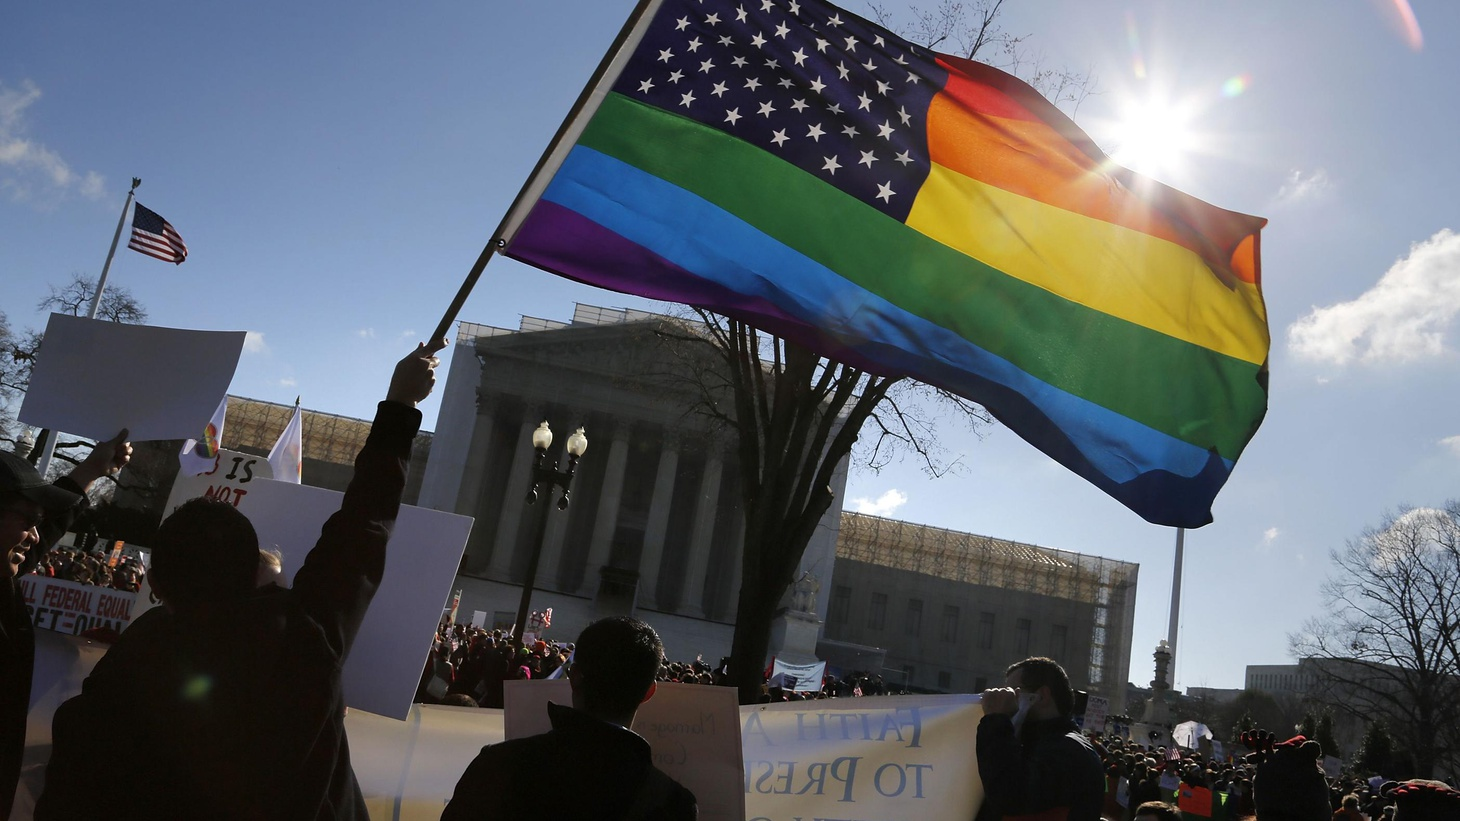 The US Supreme Court hear arguments today on same-sex marriage. Gay marriage advocates have targeted California's Proposition 8, which banned such unions 5 years ago.